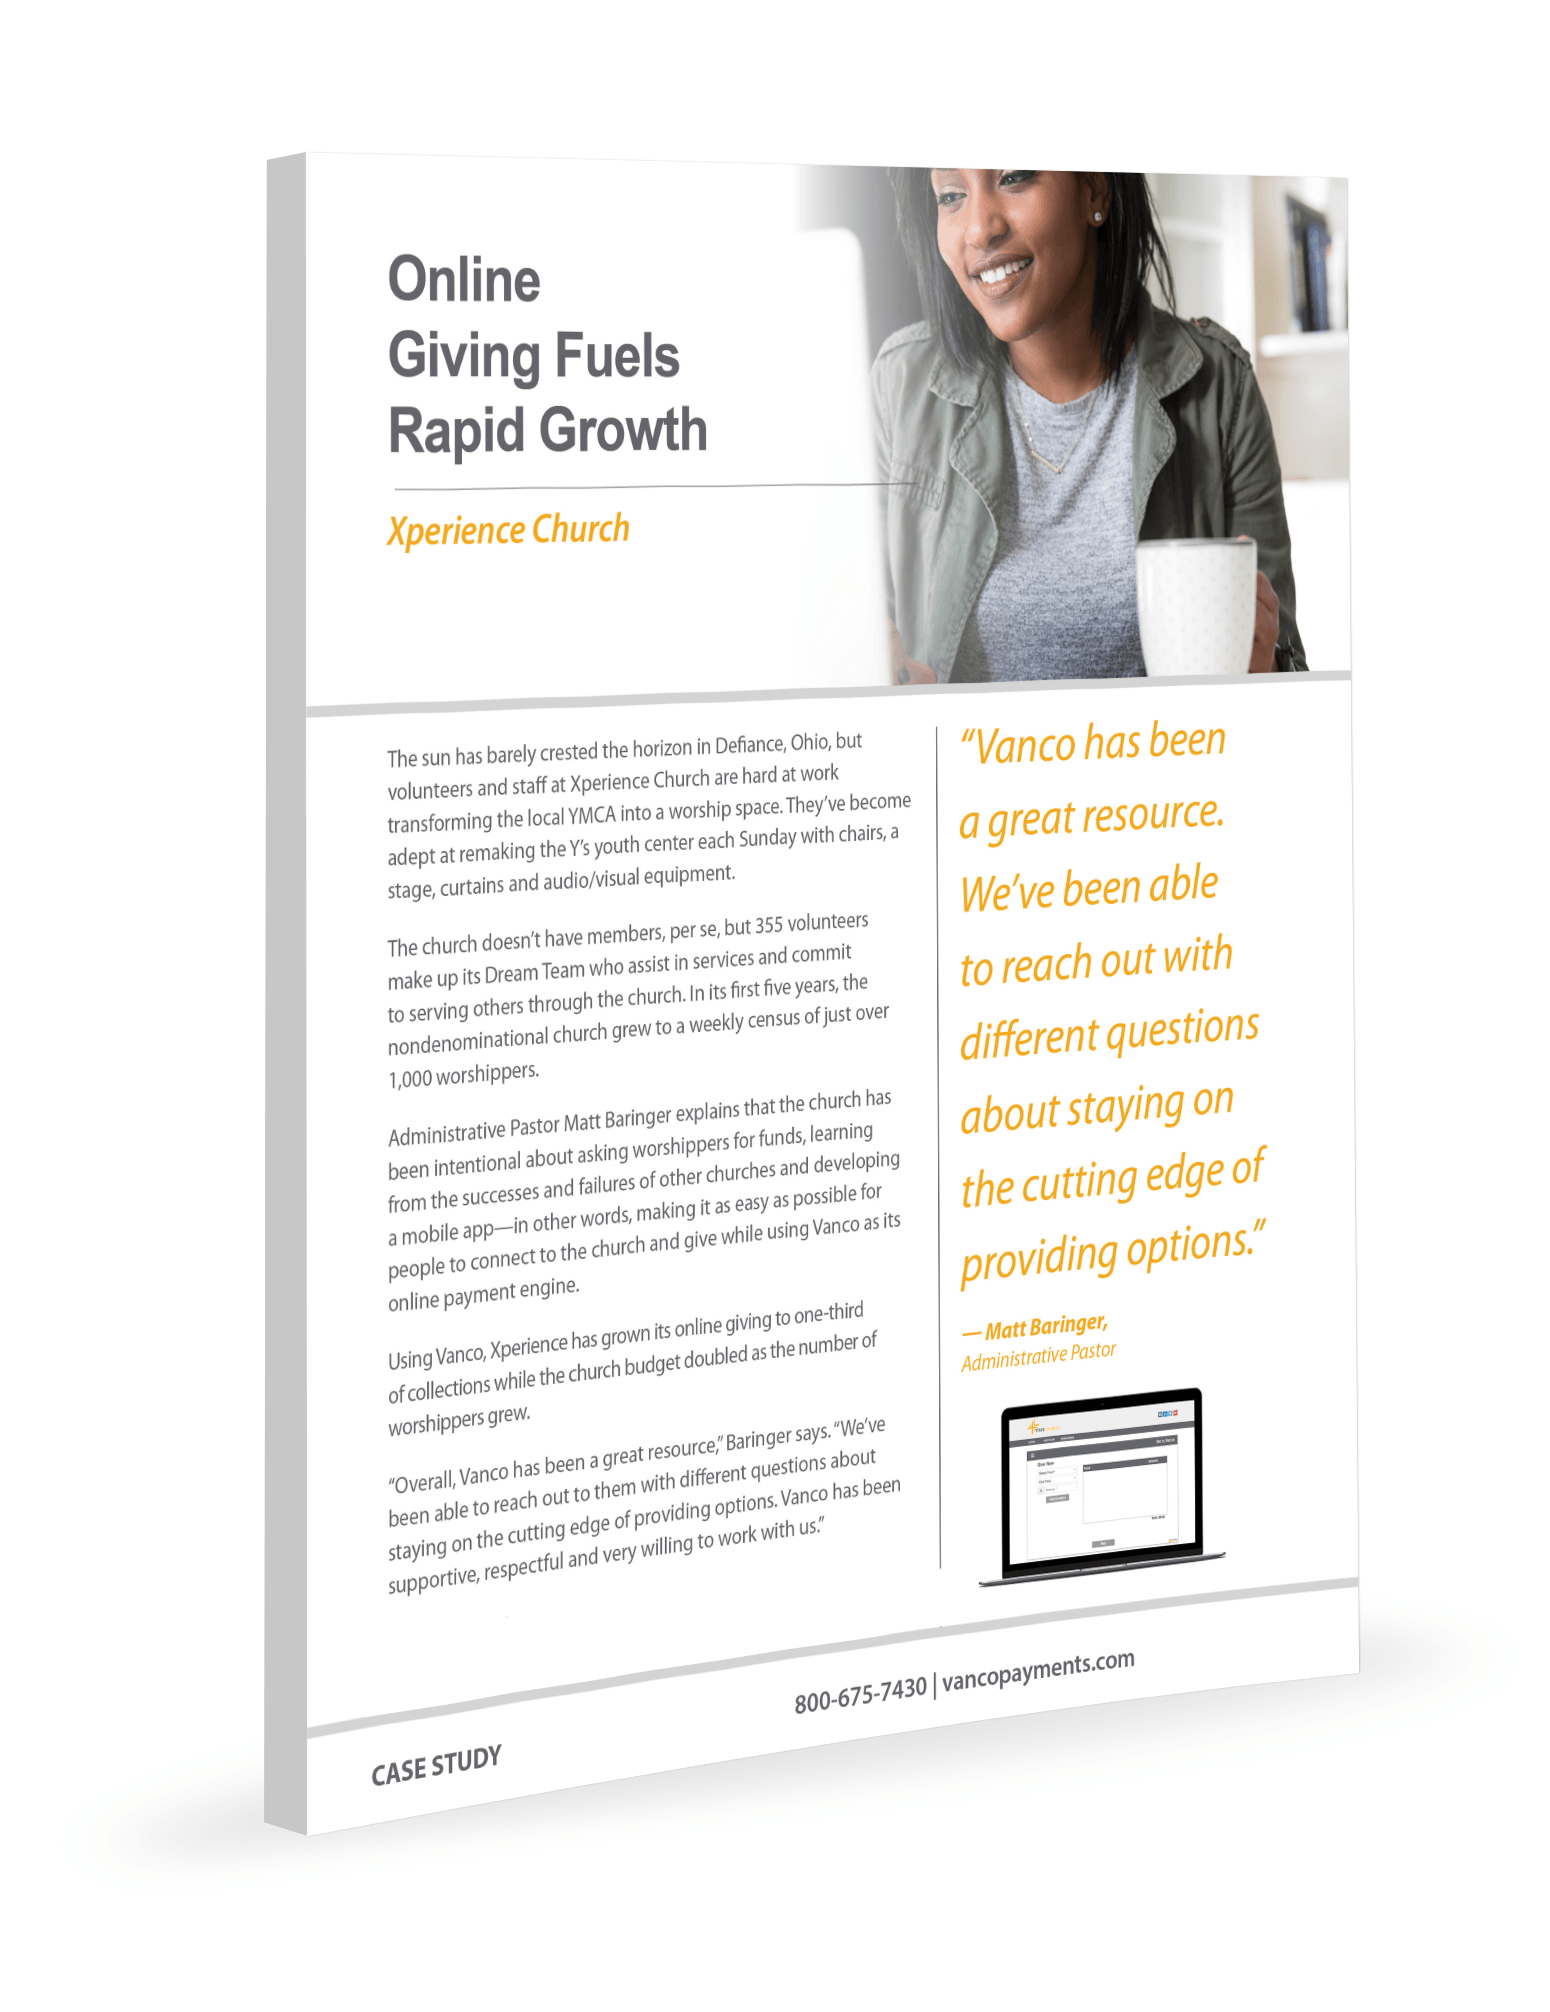 Online Giving Fuels Rapid Growth